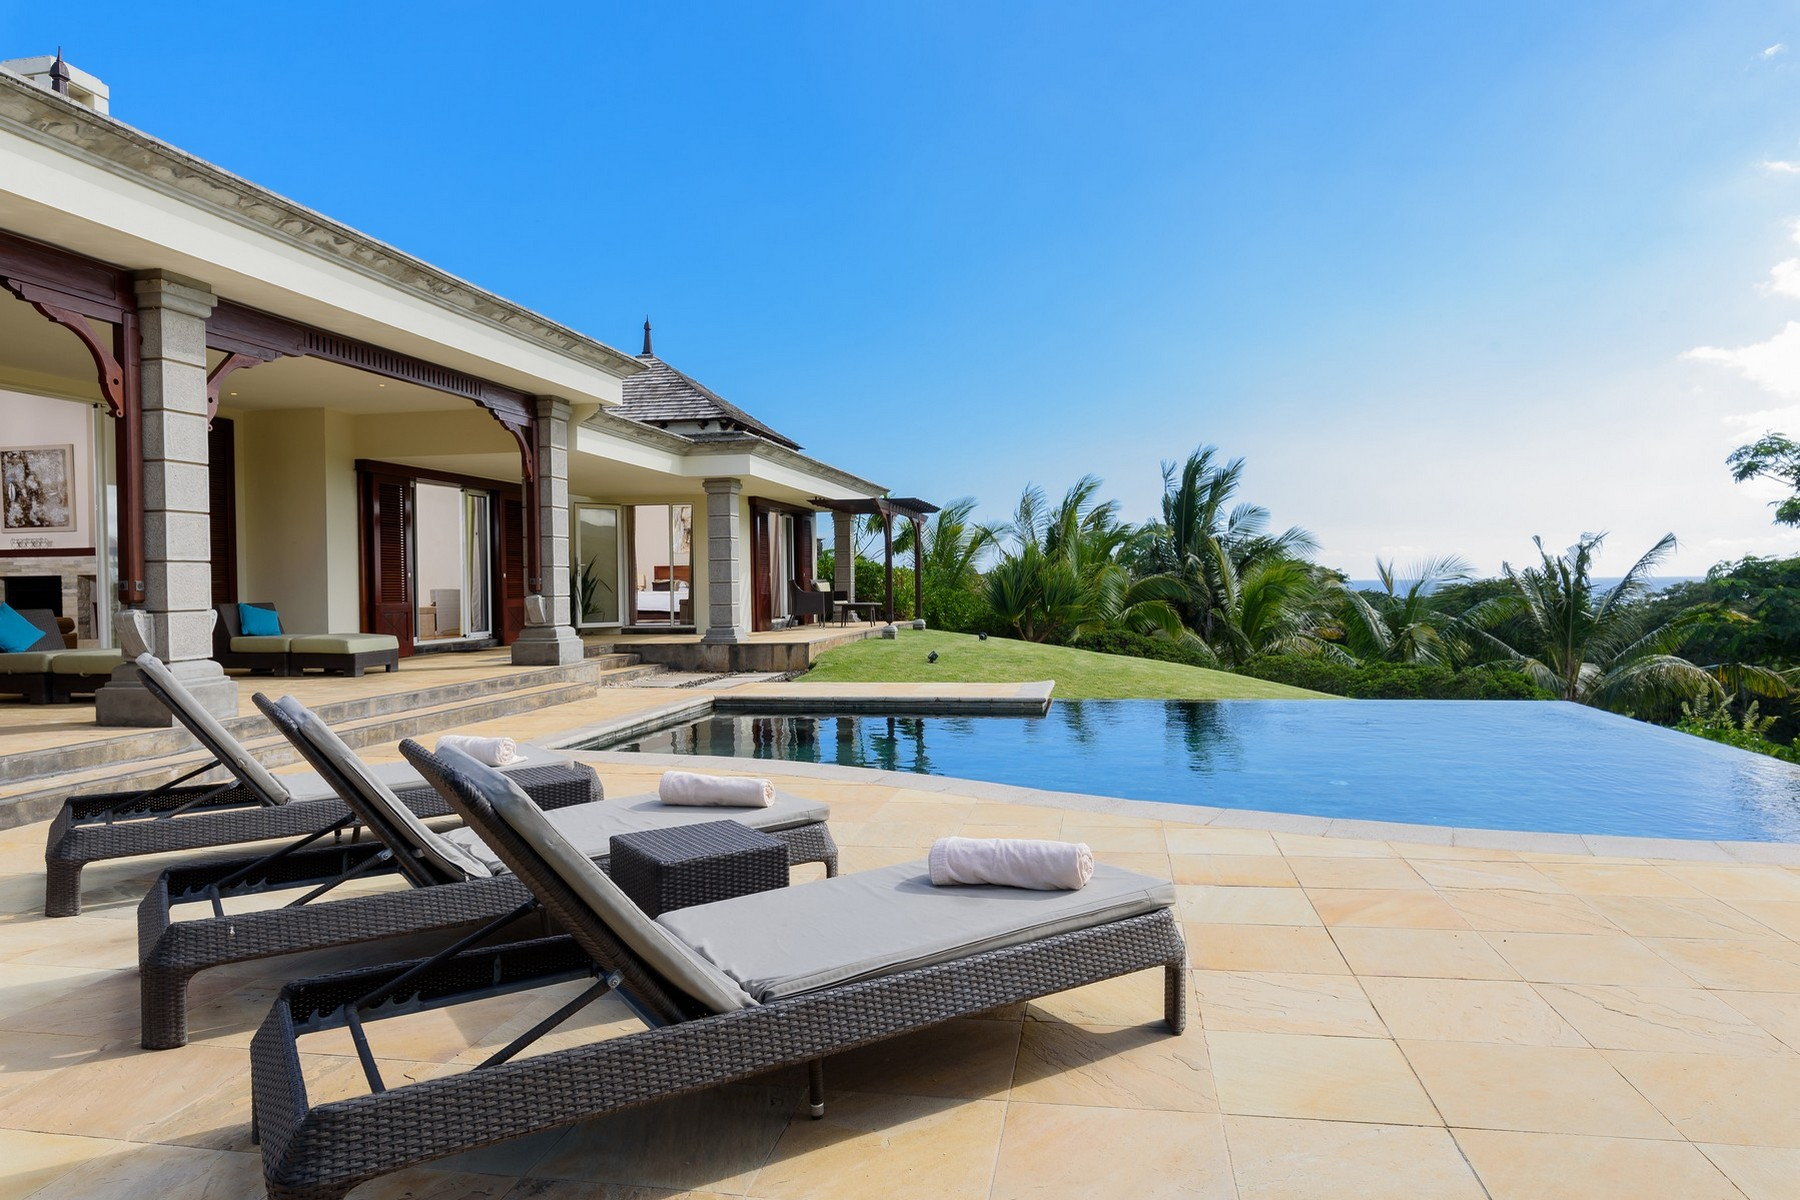 Single Family Home for Sale at 19 Villas Valriche Bel Ombre, Savanne, Mauritius